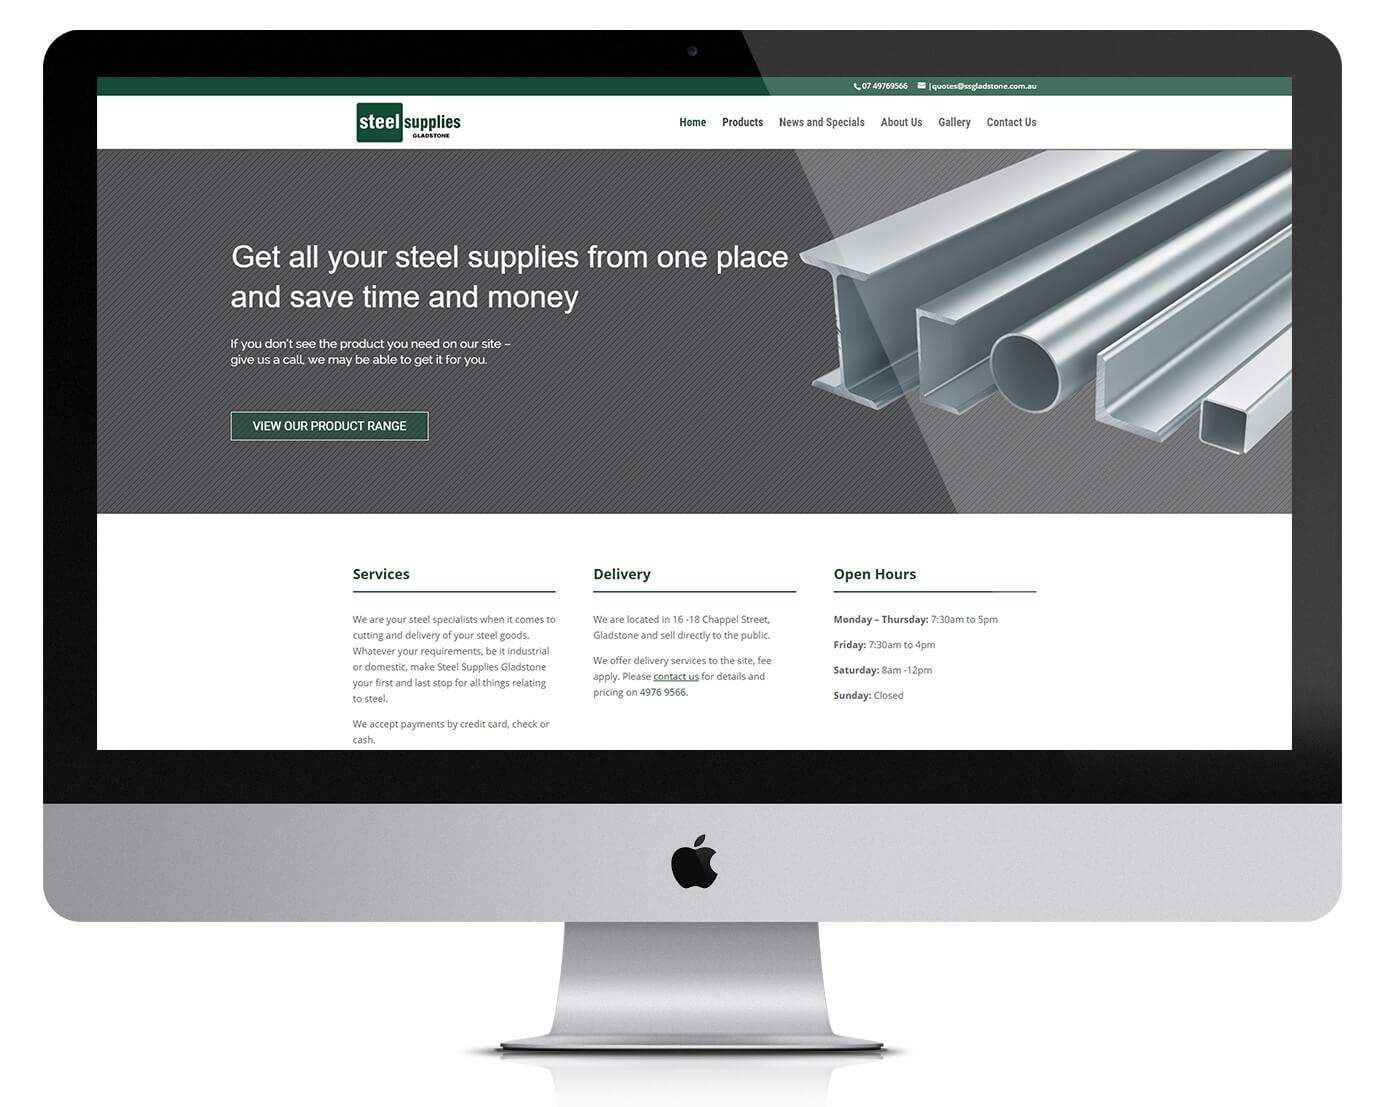 website design for local steel supplies business